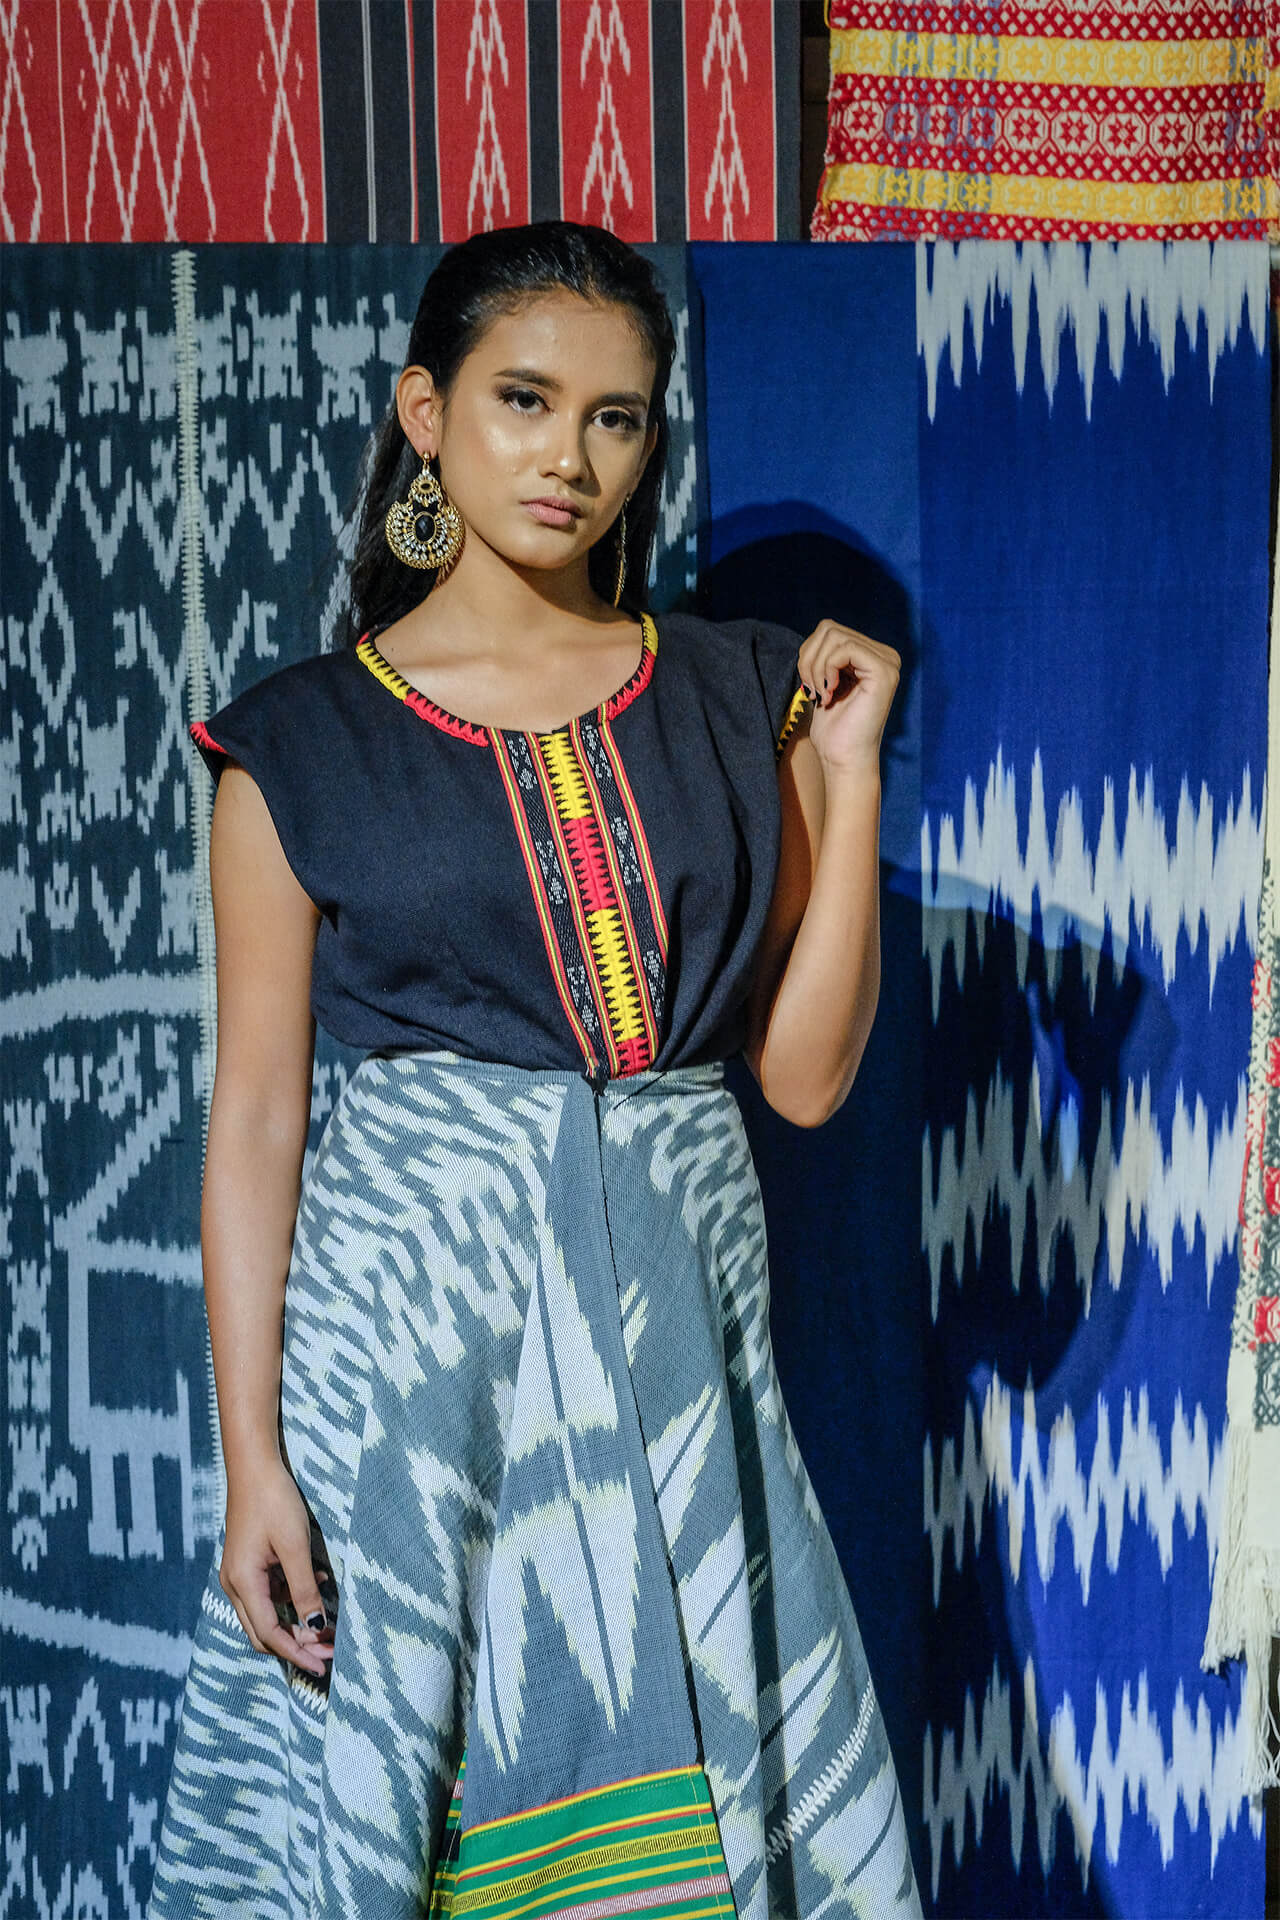 model wearing couture textile featuring iconic Ifugao patterns